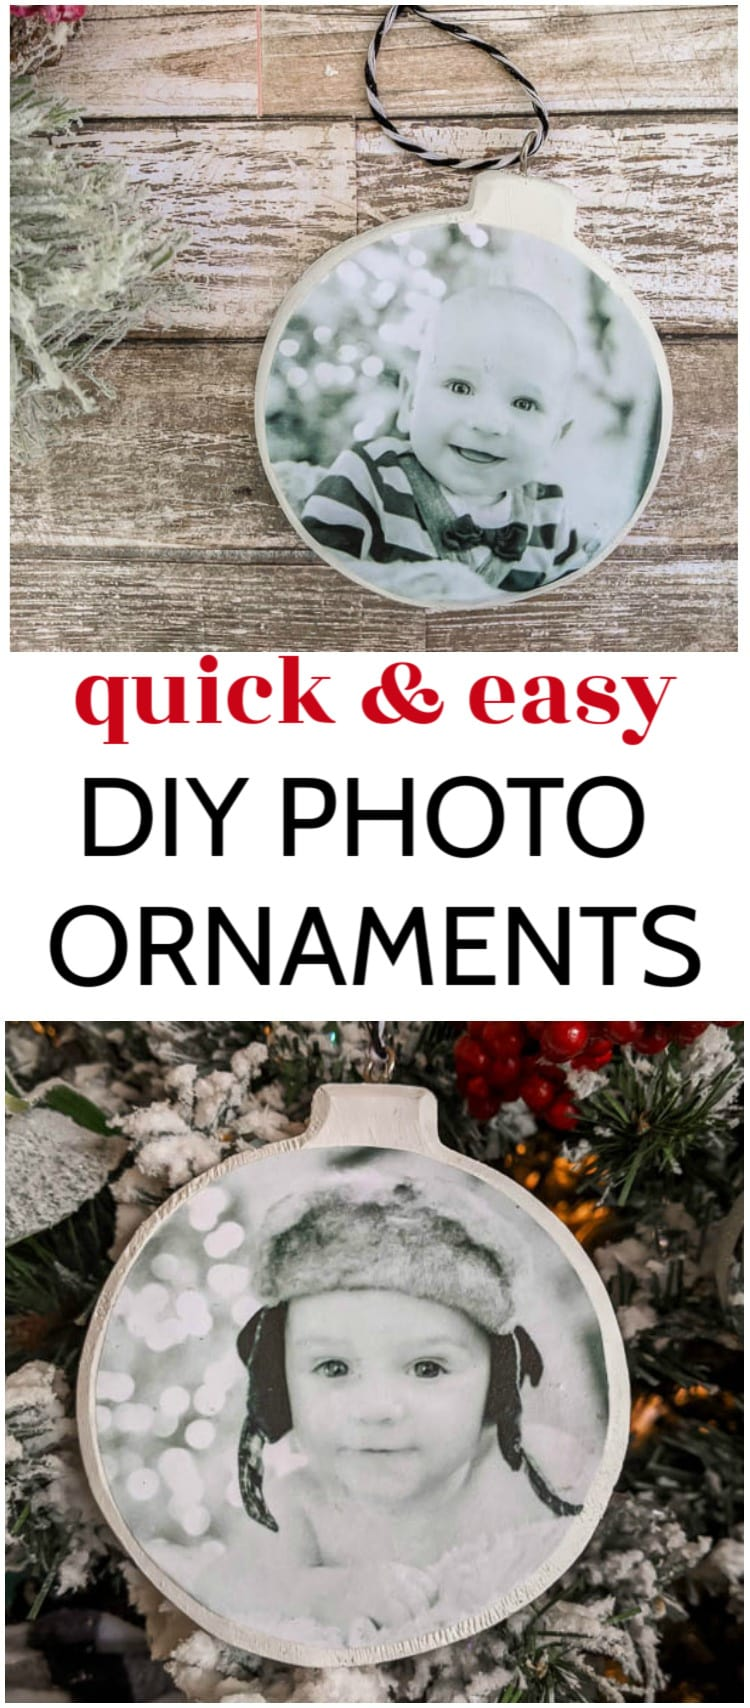 Two cute DIY photo ornaments with the text: quick and easy DIY photo ornaments.